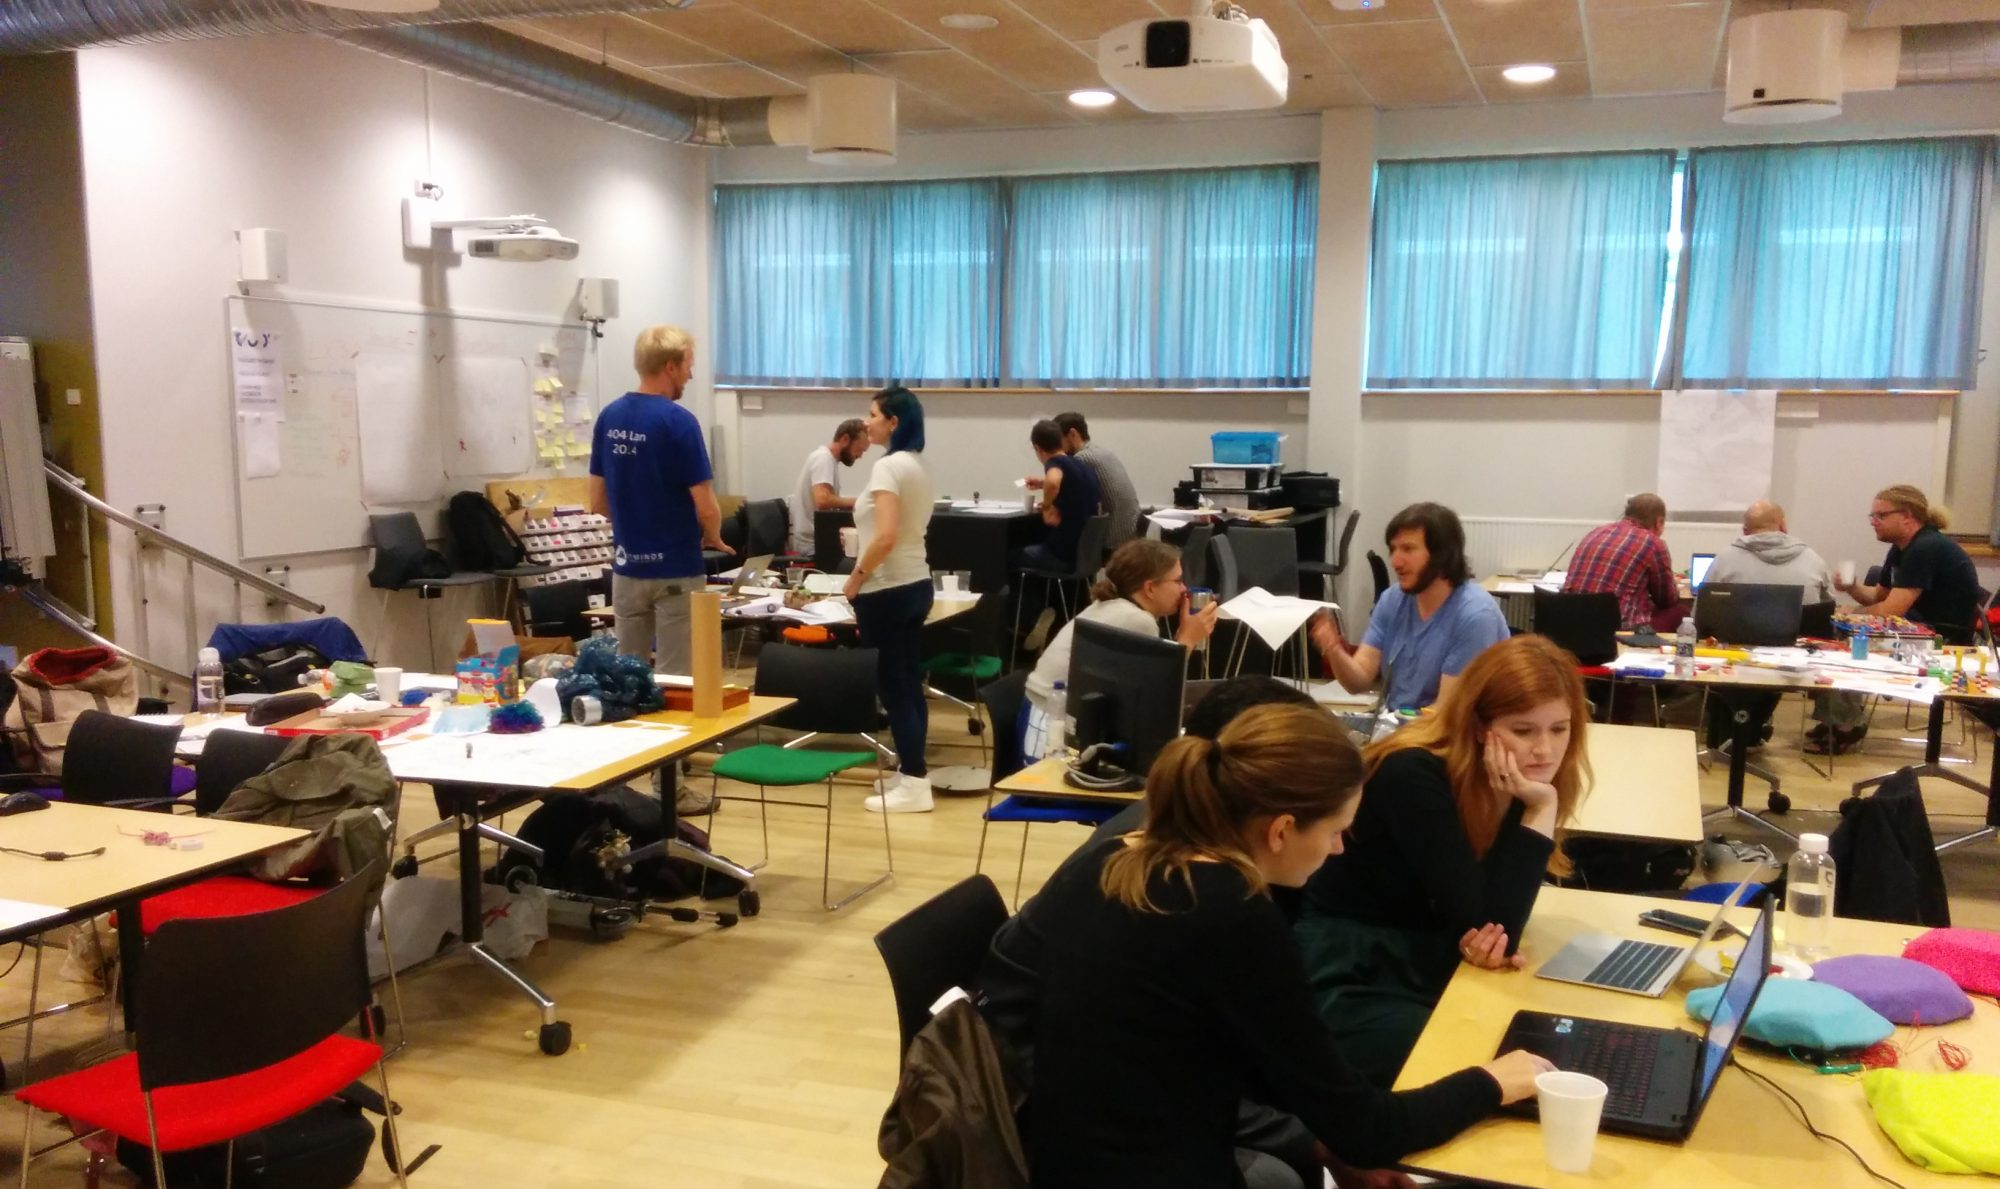 Hybrid Learning Spaces - Design, Data, Didactics